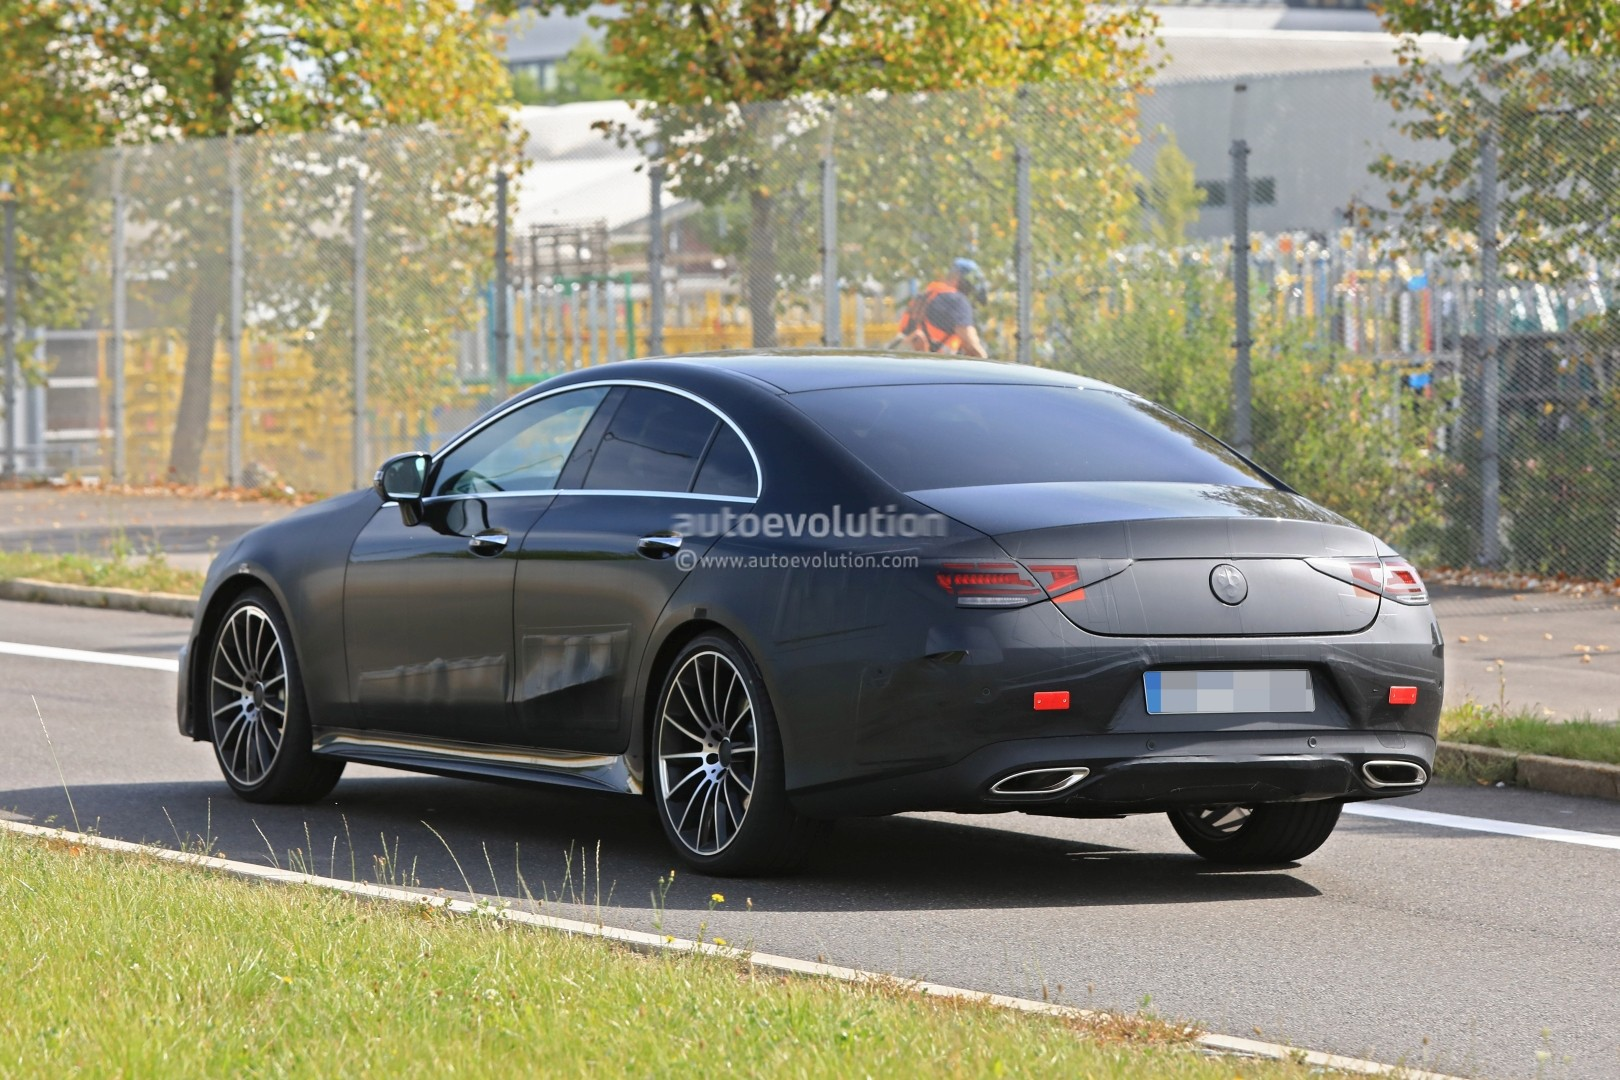 spyshots-production-ready-2018-mercedes-benz-cls-amg-line-has-darth-vader-face_6.jpg